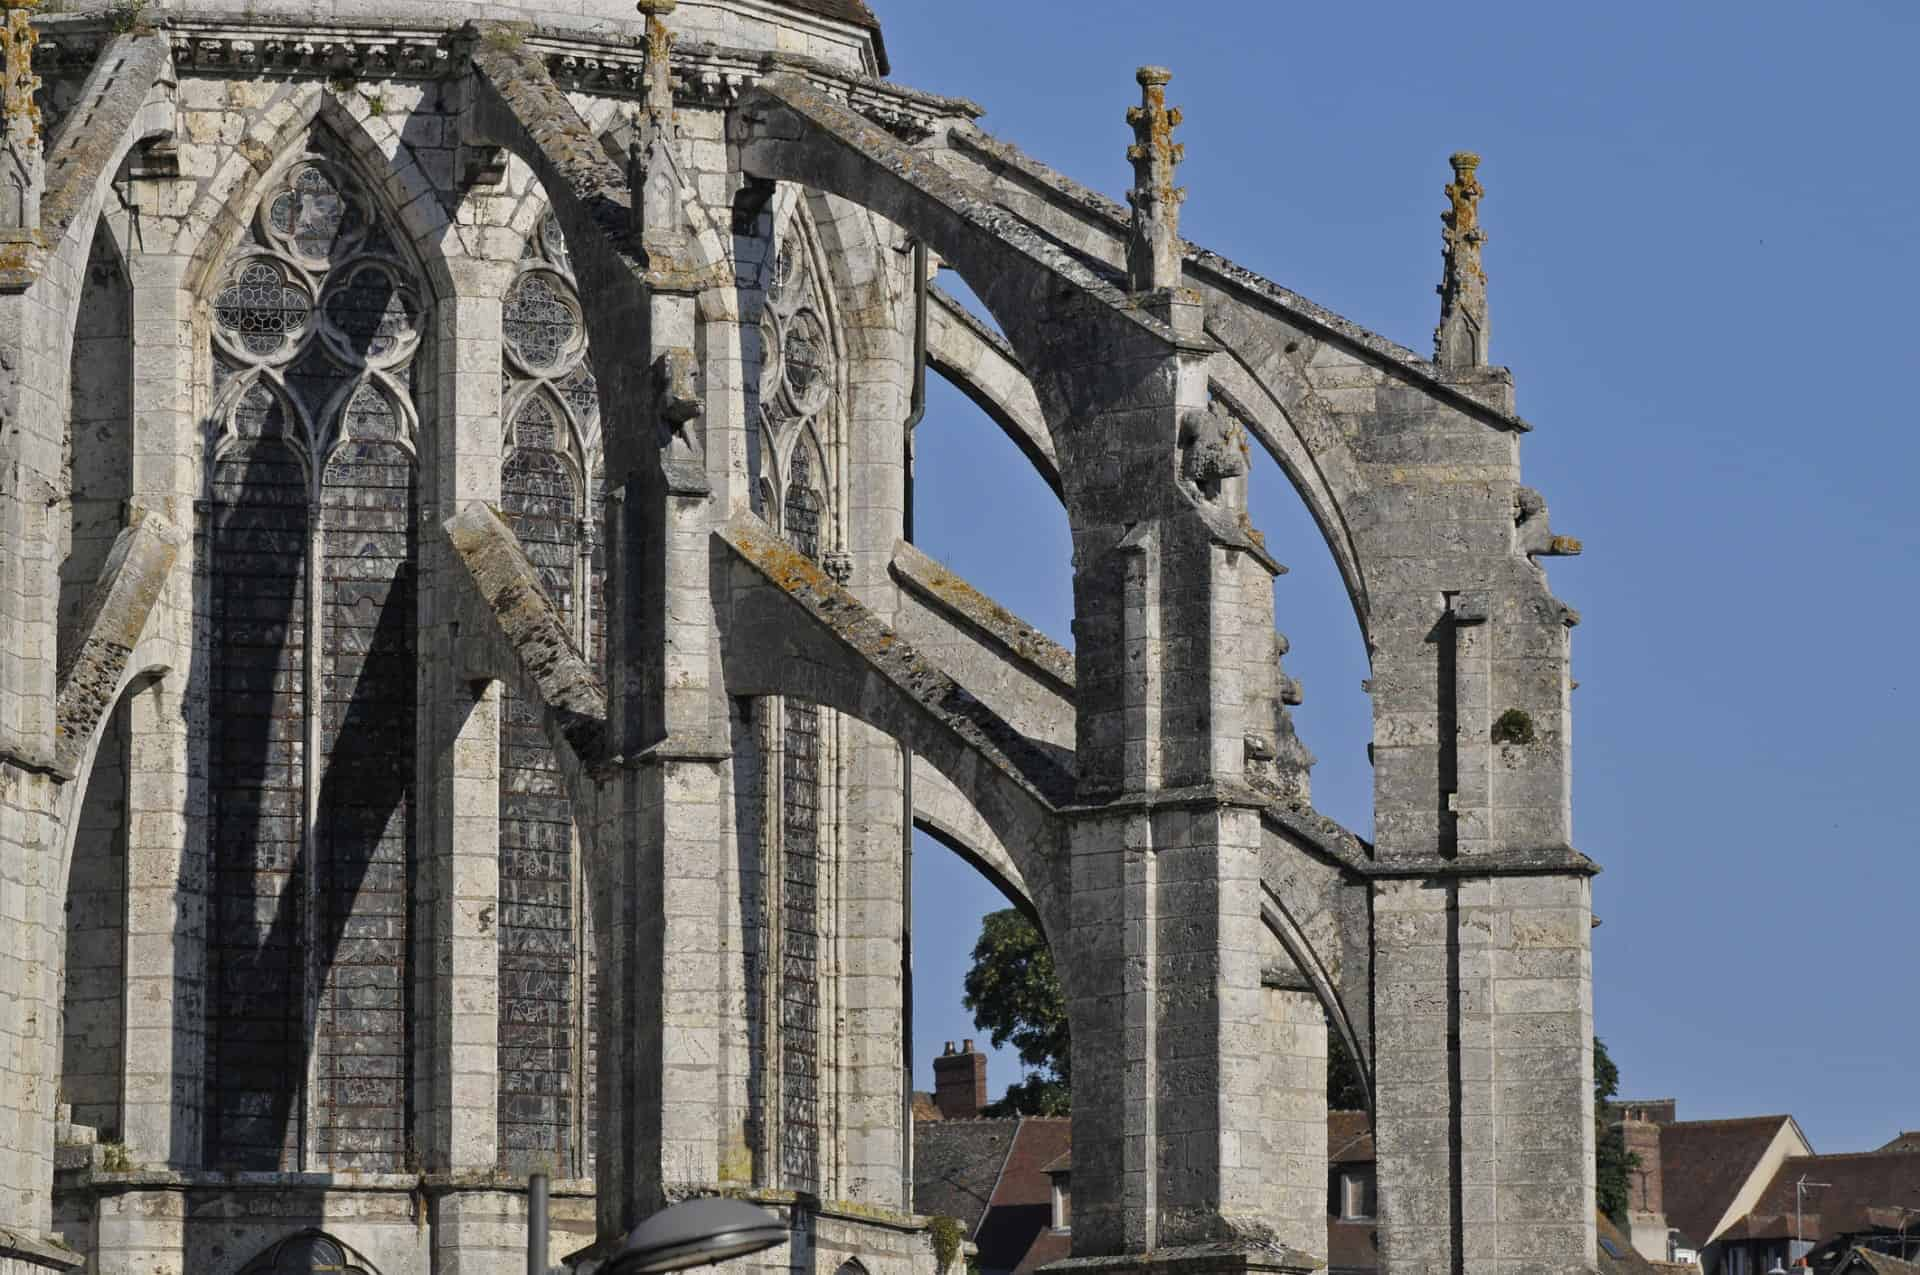 Flying buttresses on a Gothic building